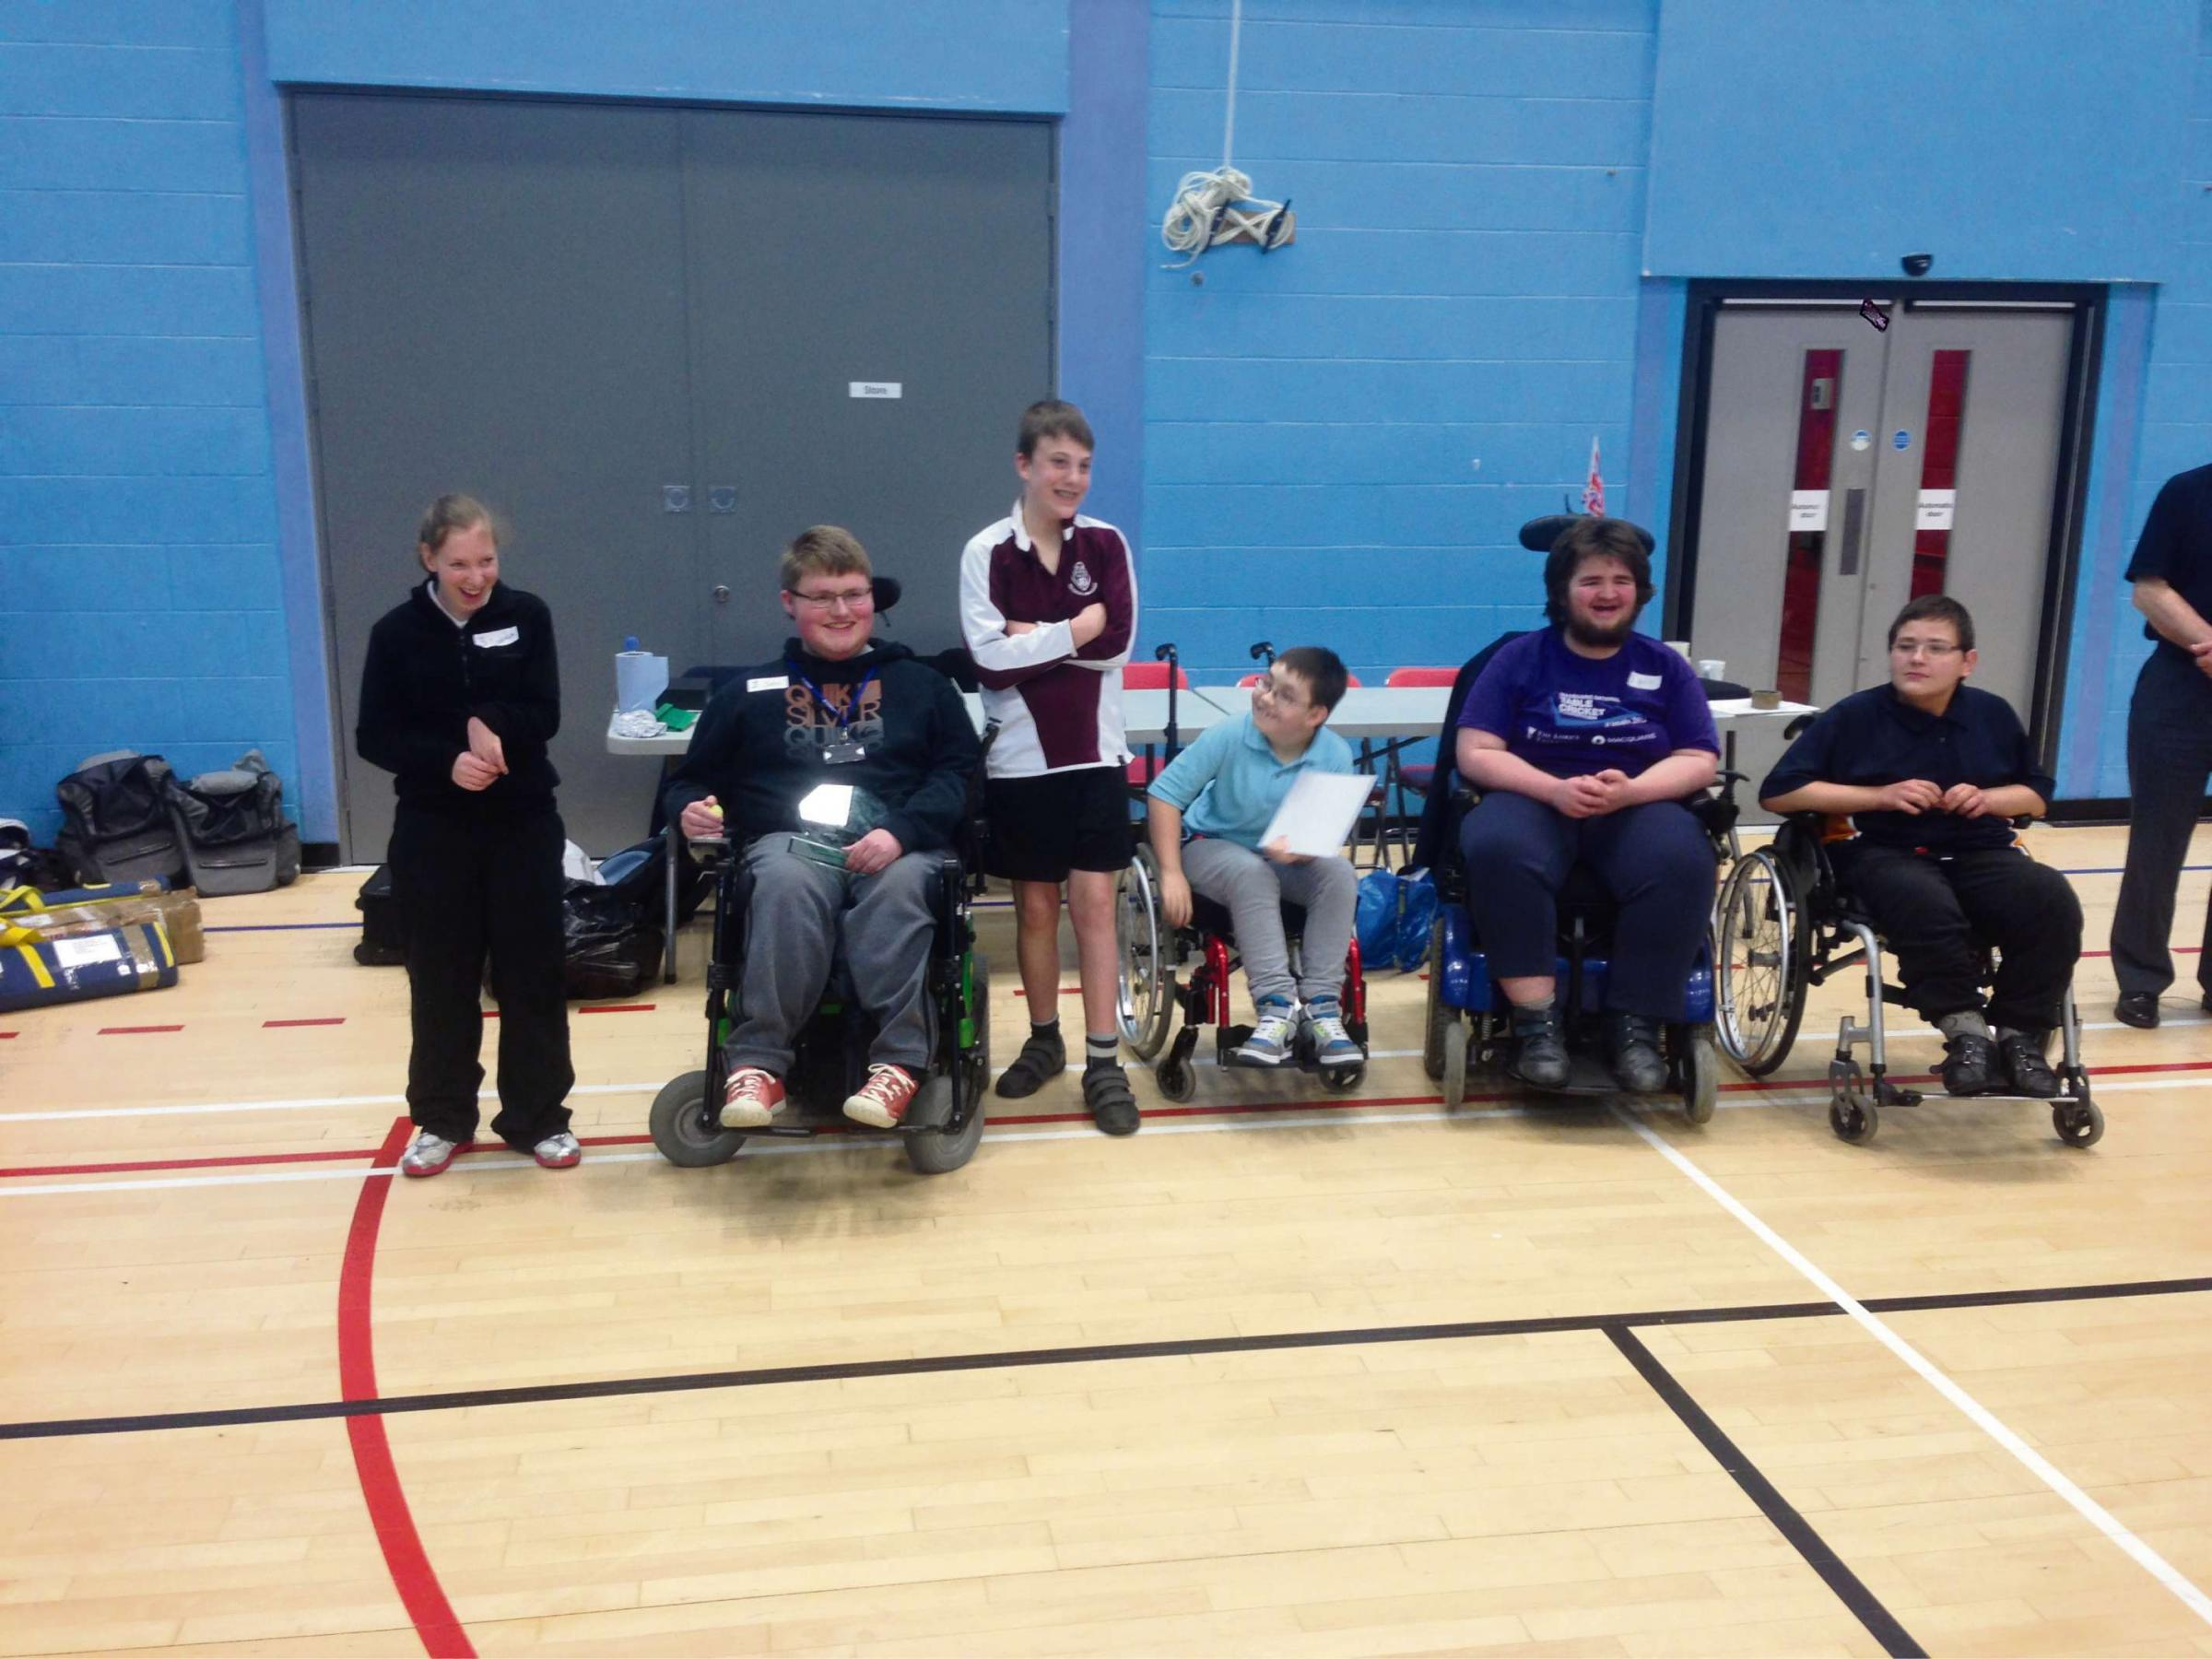 South Glos A's winning table cricket team